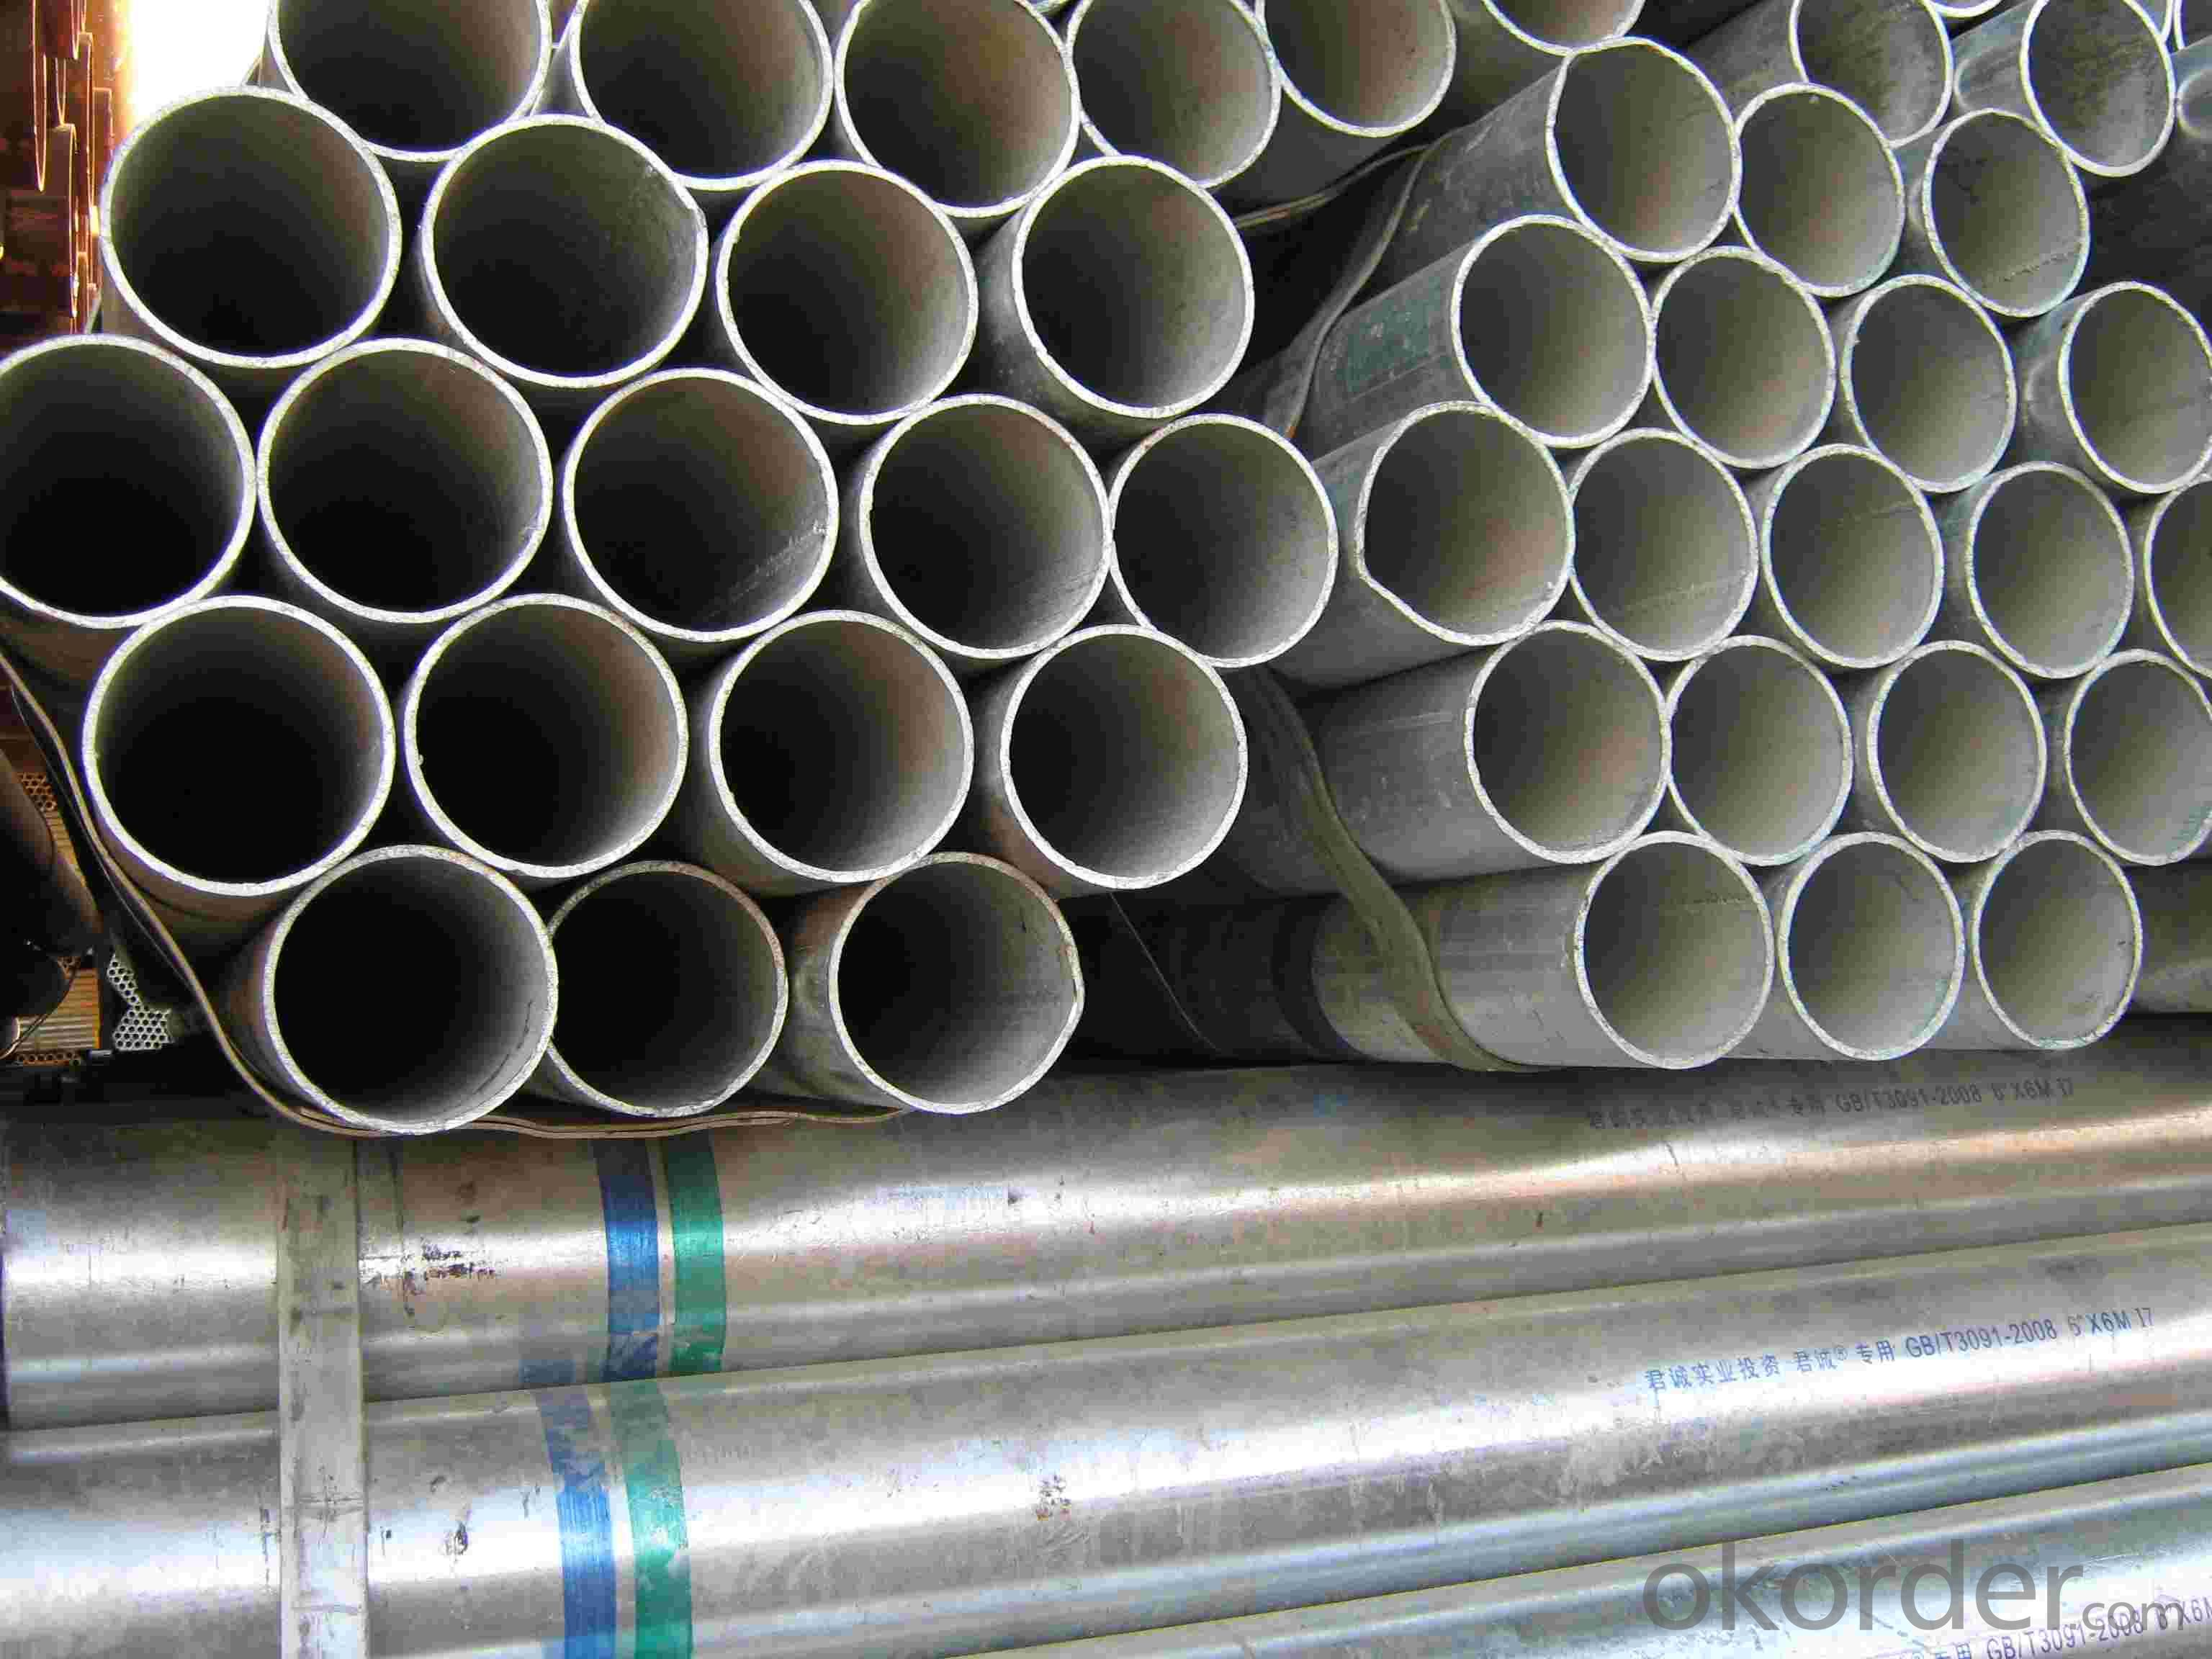 America Standard A53 100g Hot Dipped or Pre-galvanized Pipe